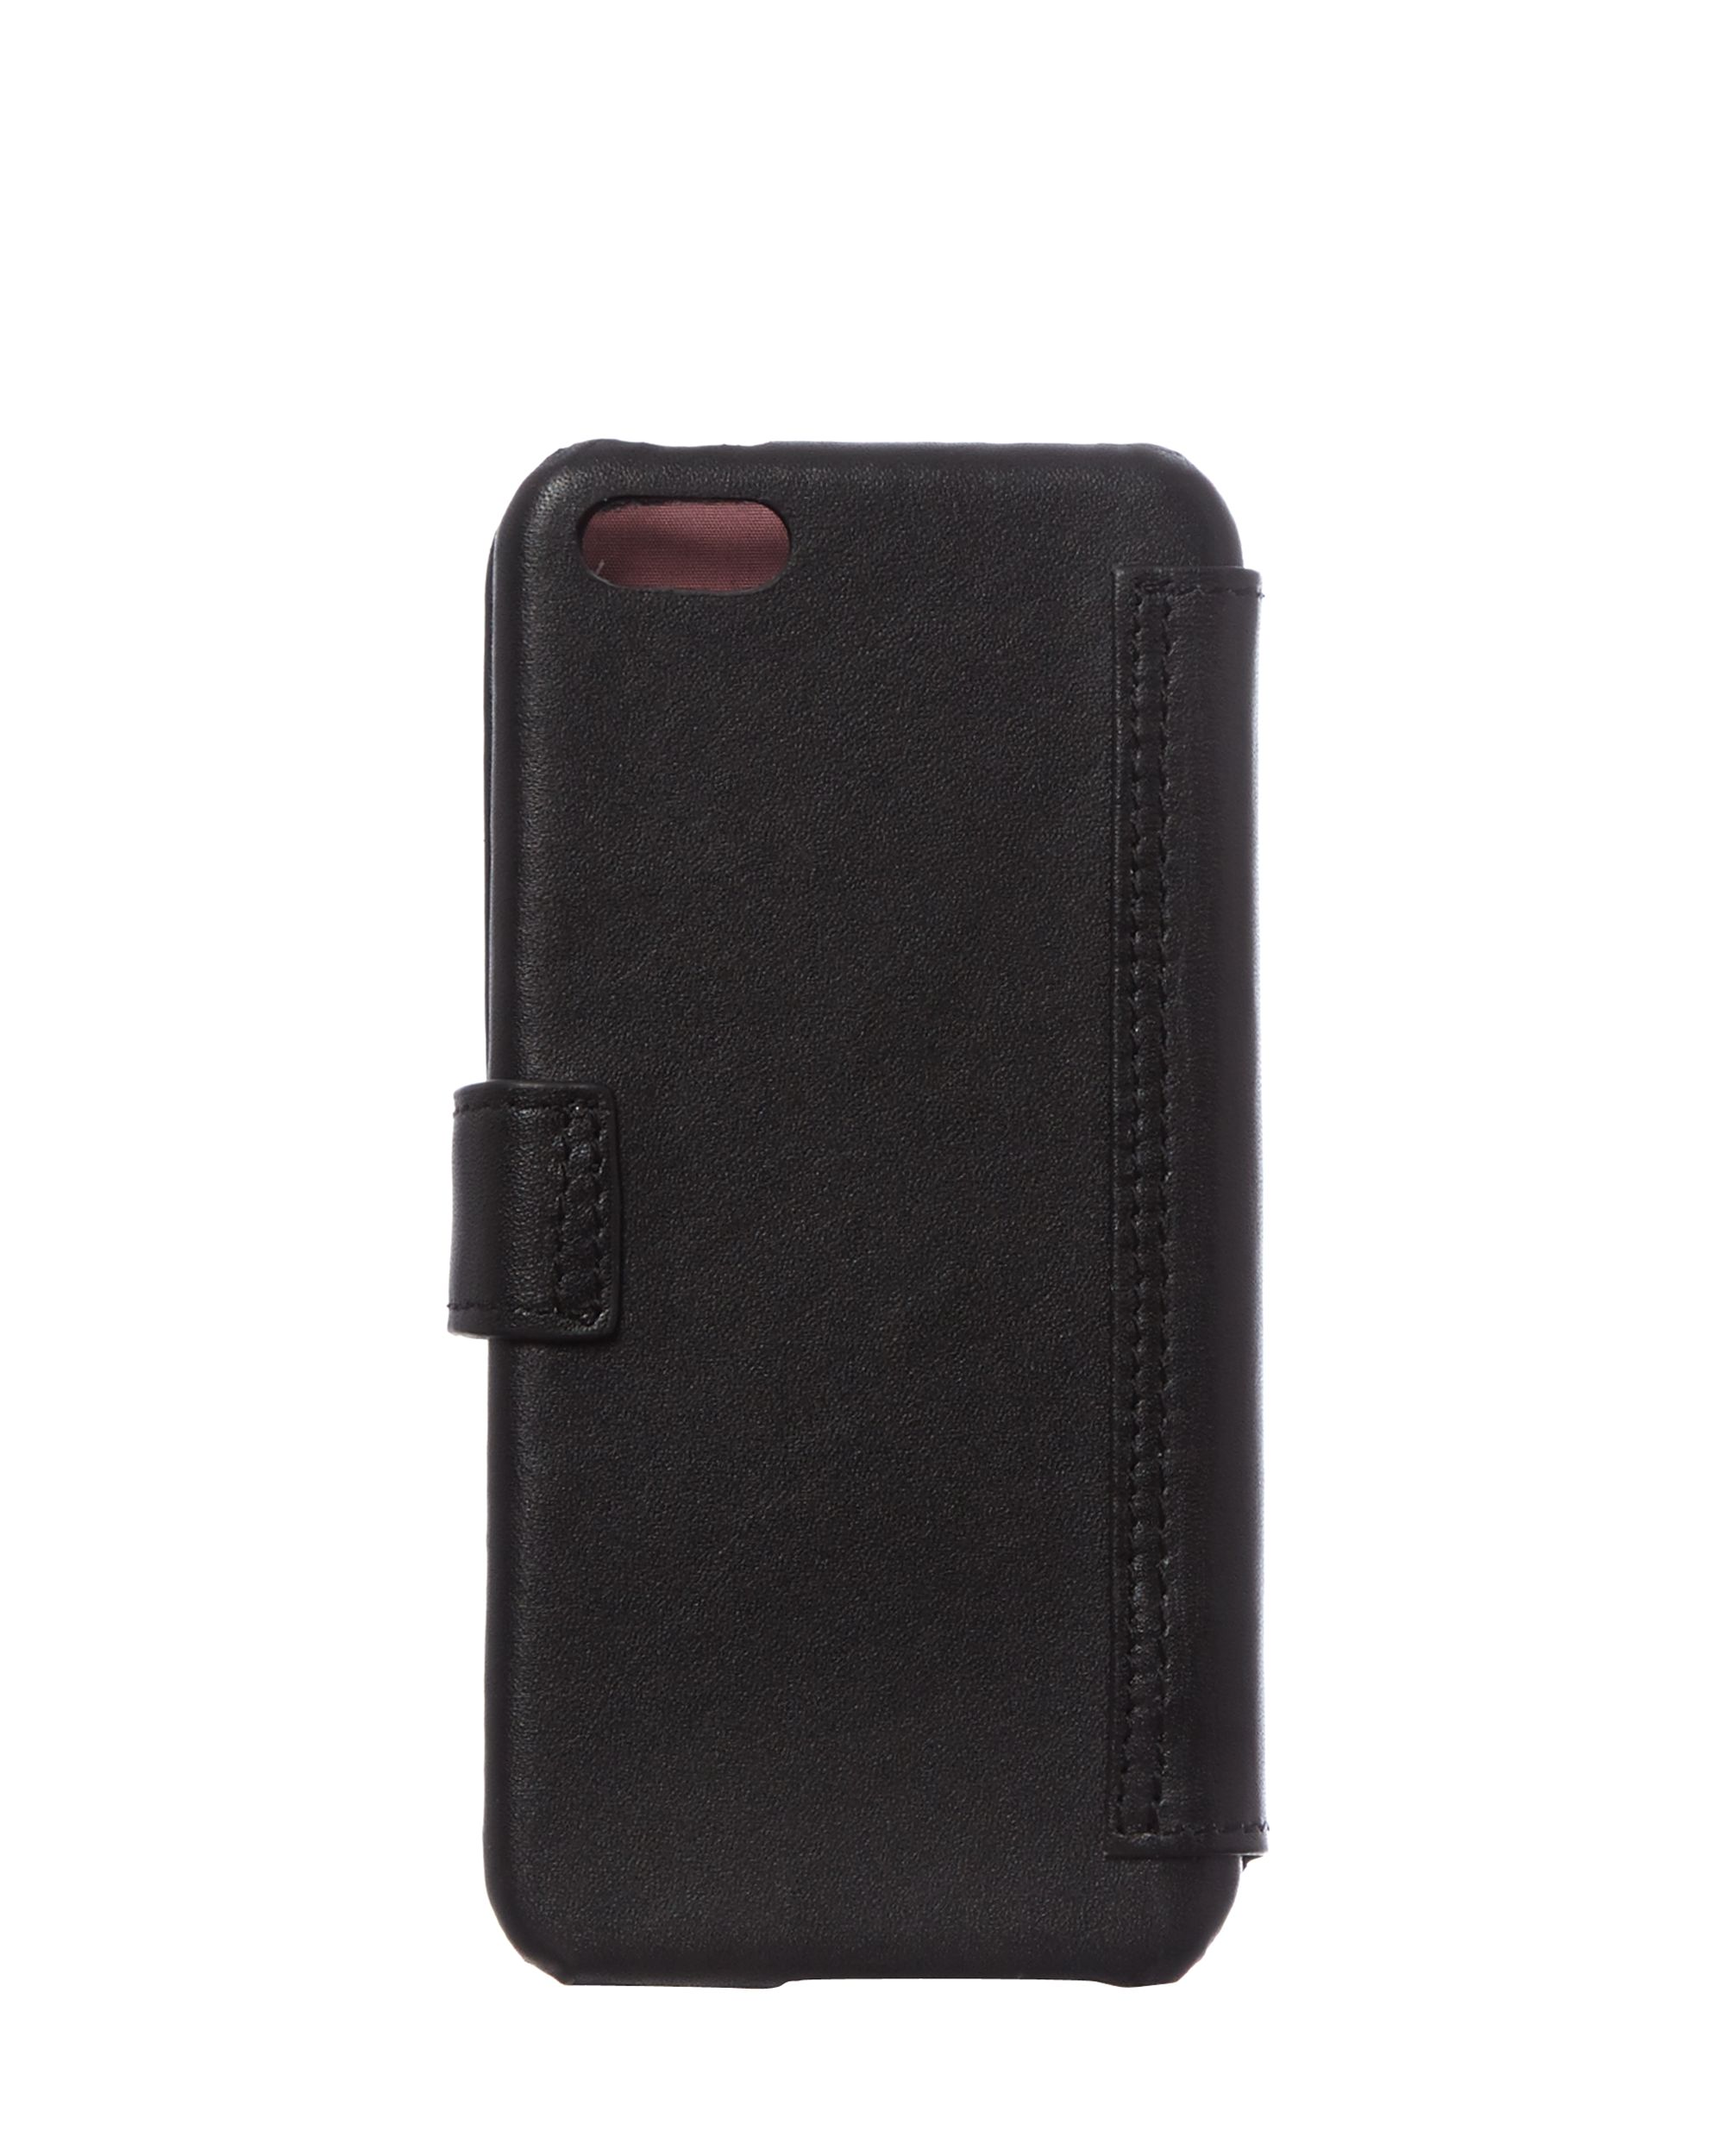 Walk the walk black iphone case